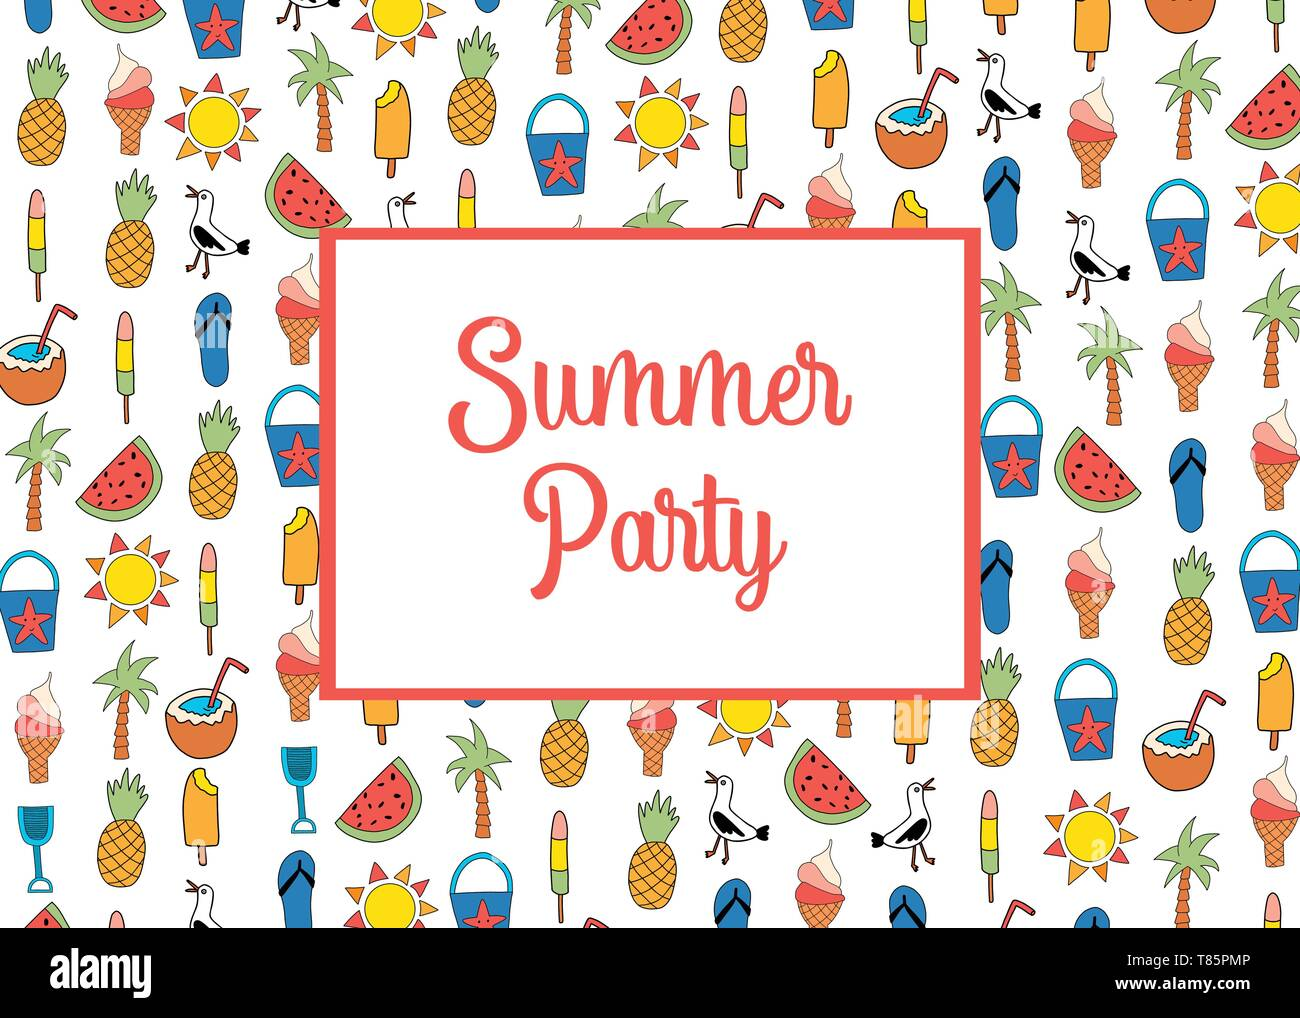 Summer Party Invitation Card Template Vector With Summer